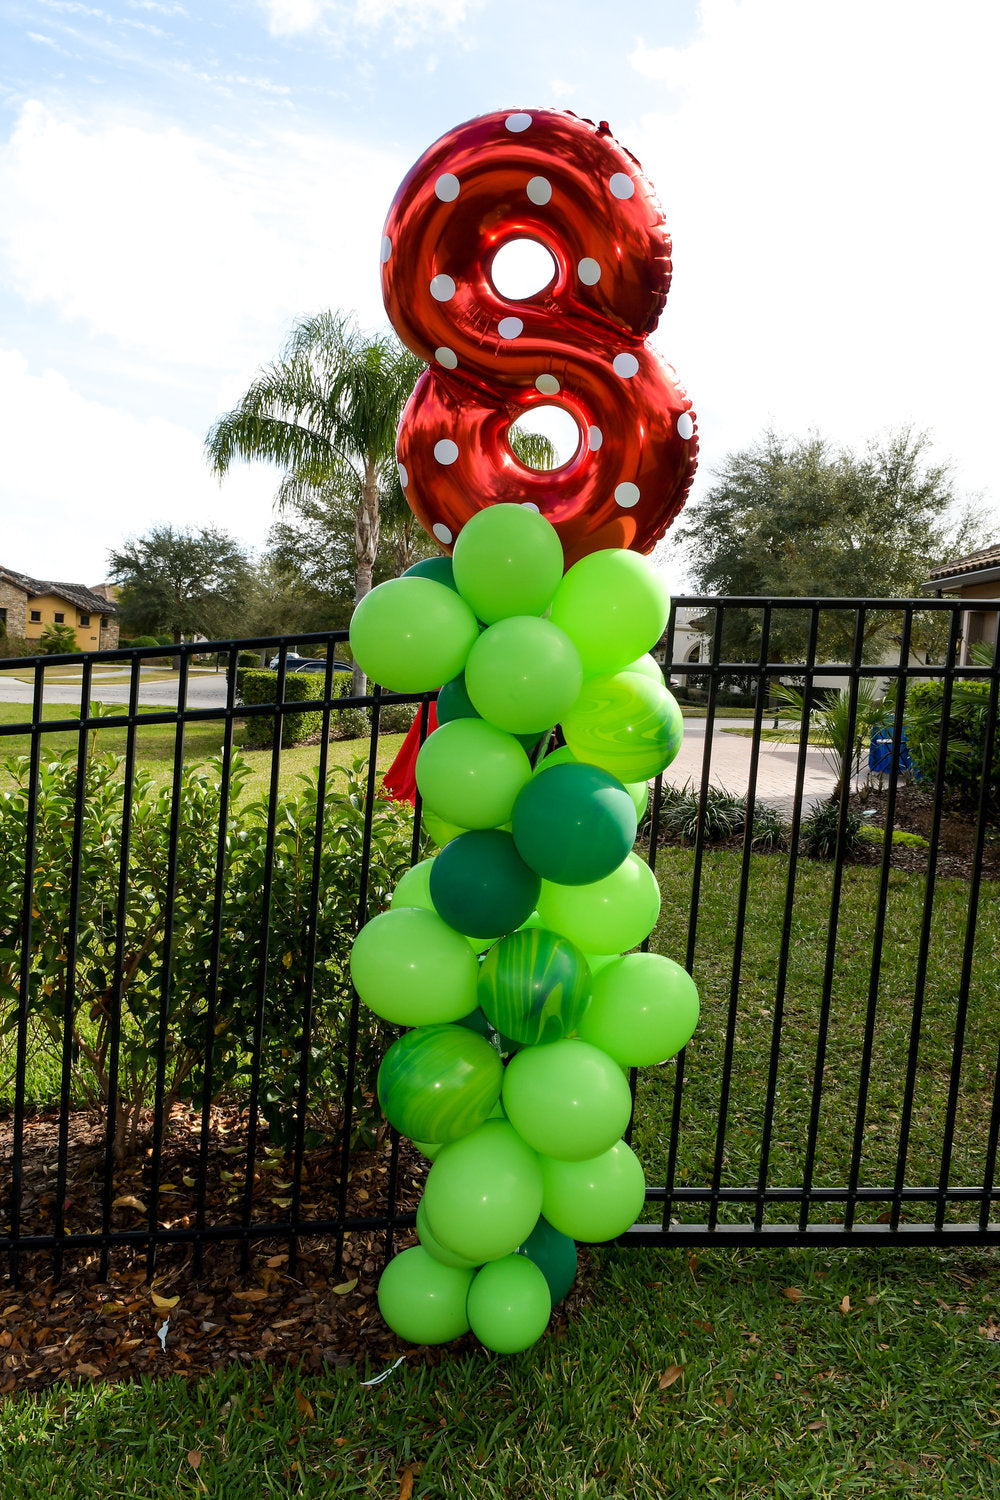 """8"" mylar balloon sitting on top of green balloons"